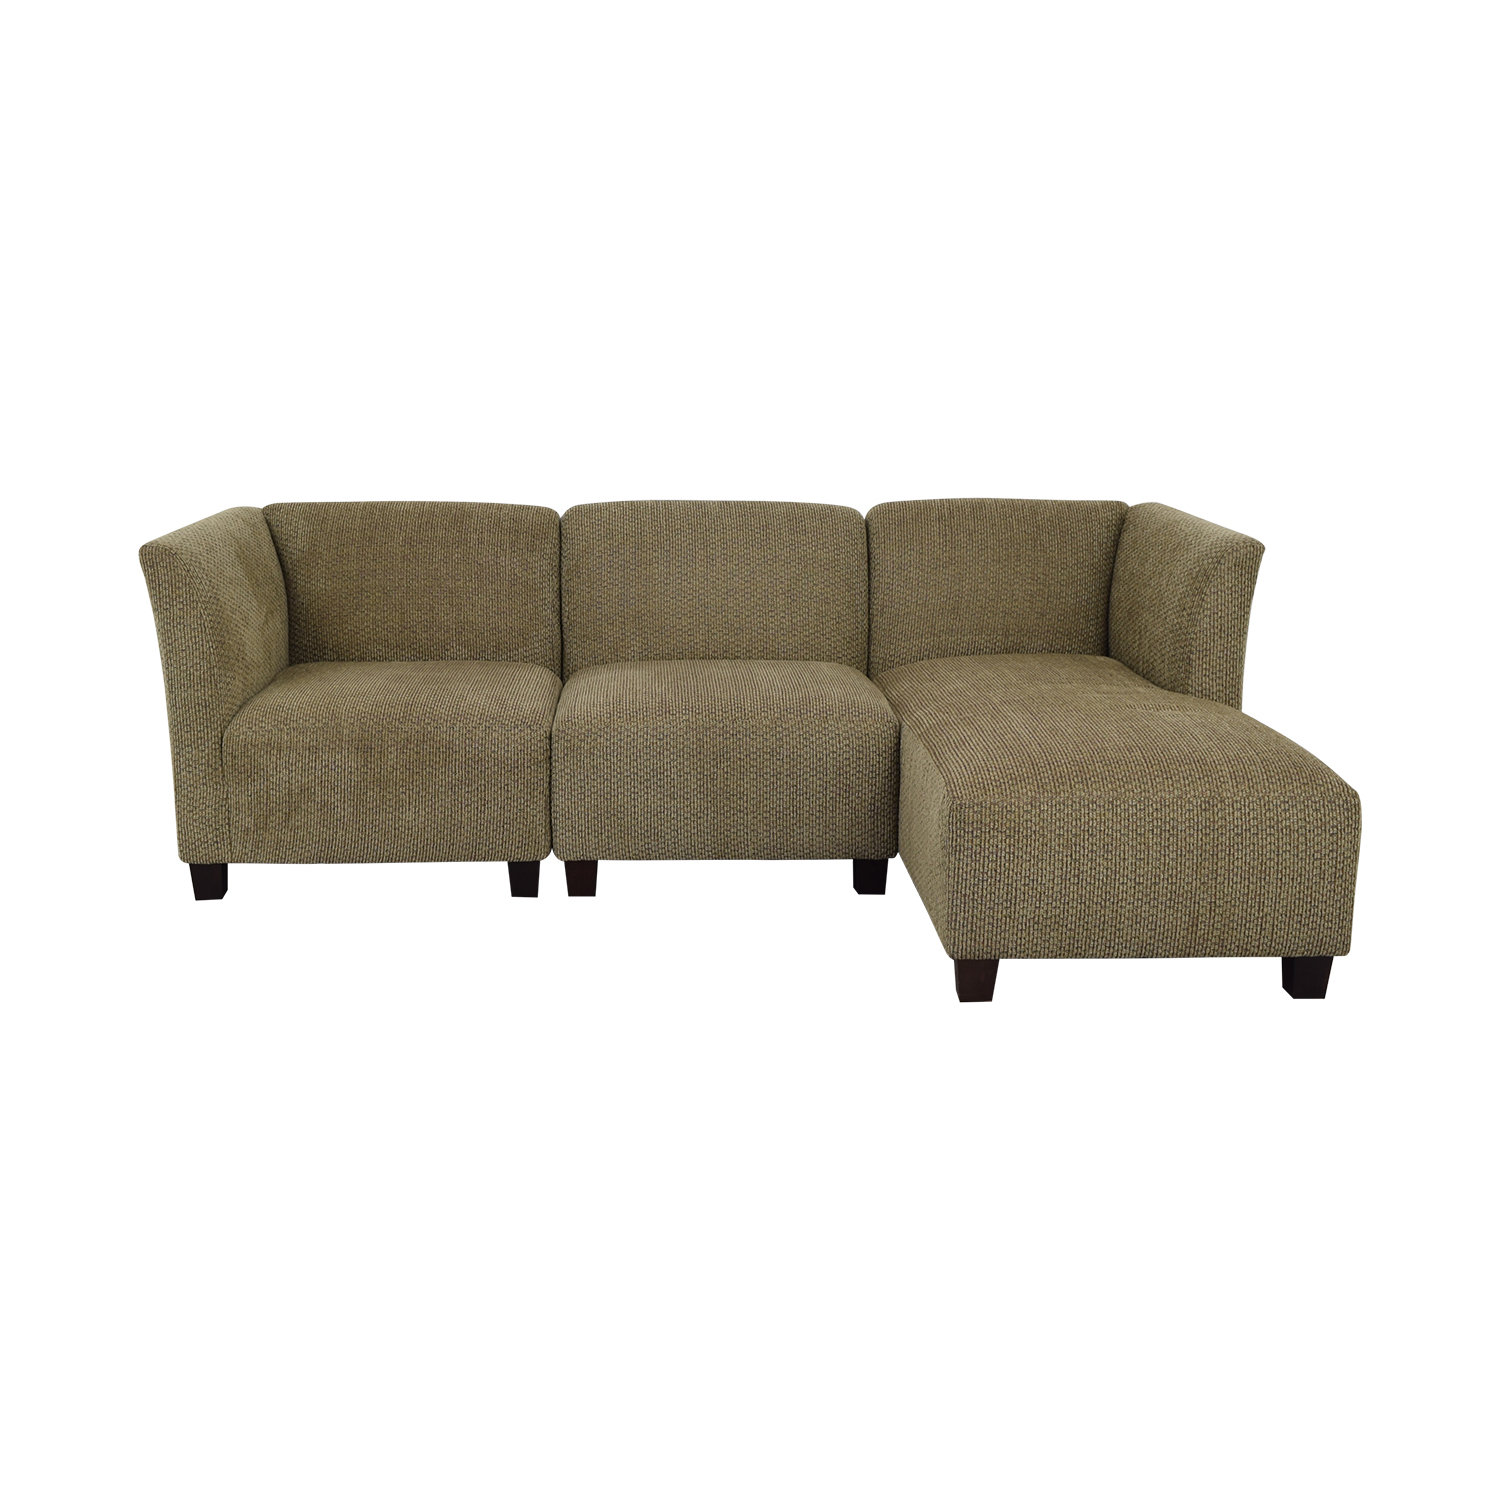 Rowe Furniture Rowe Furniture Sectional Sofa second hand